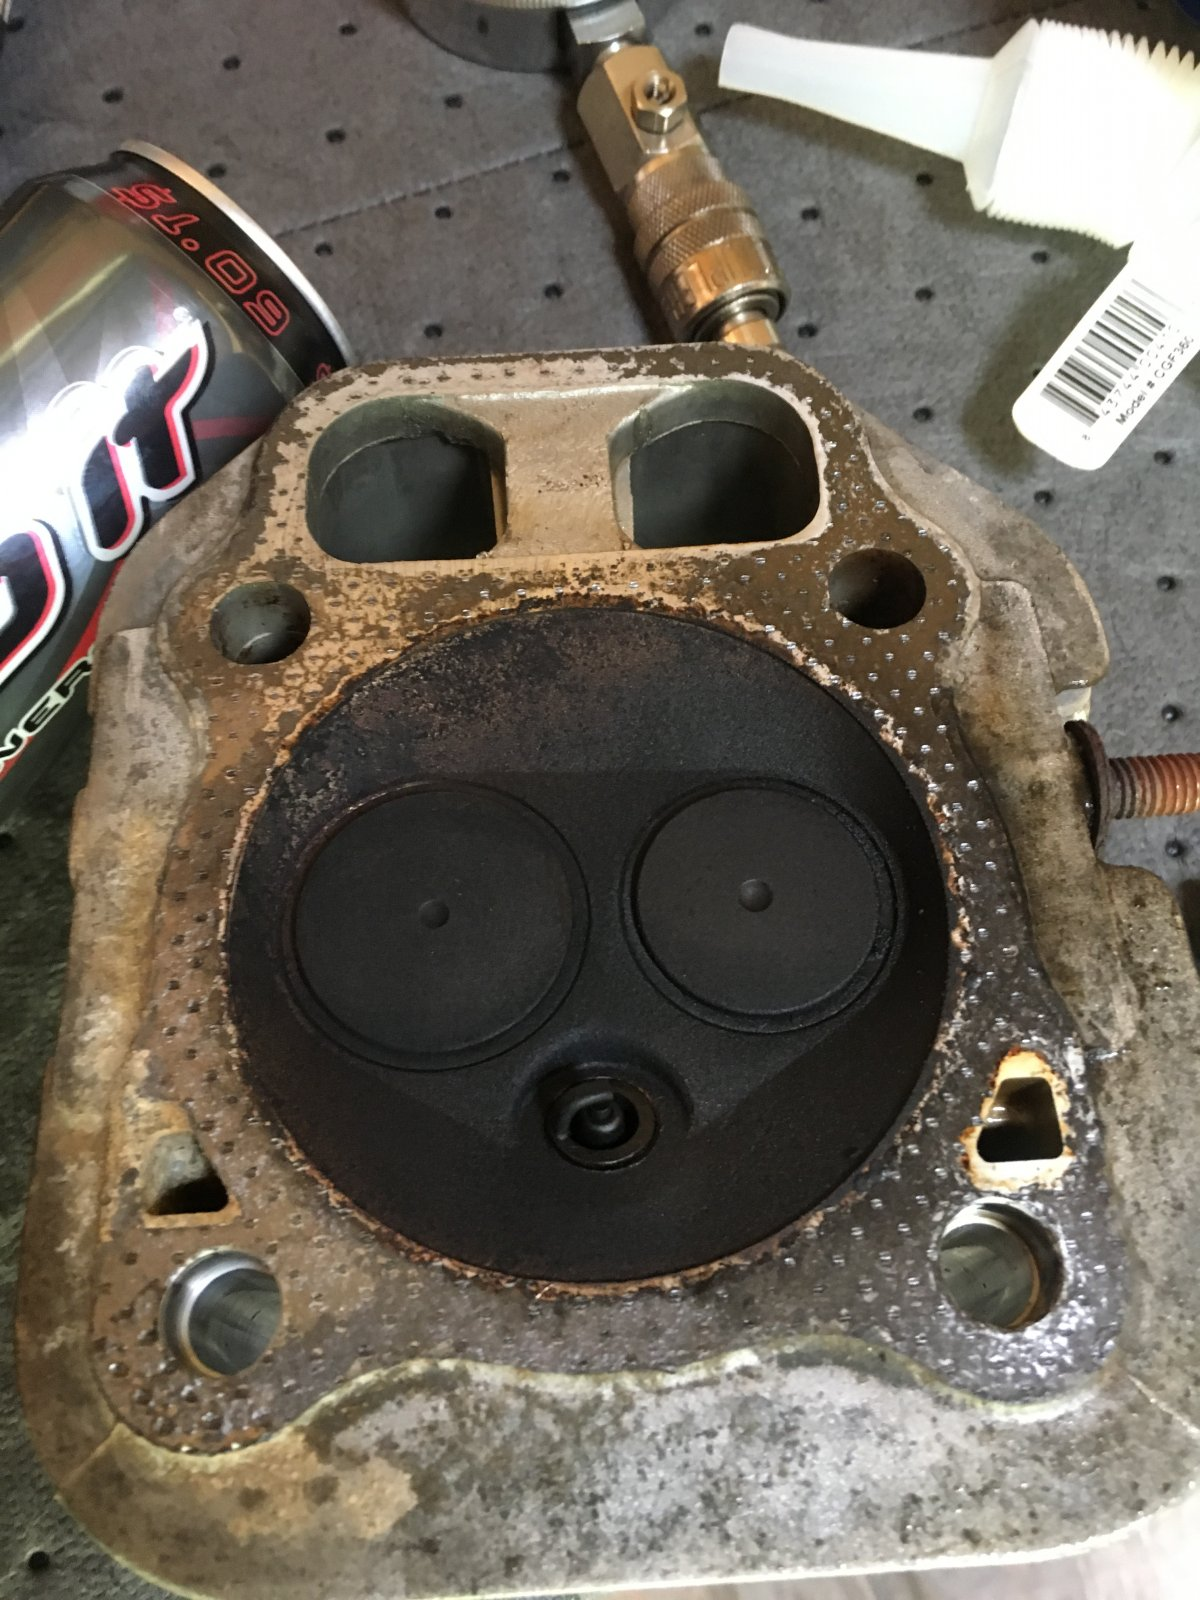 Can a blown head gasket and/or bad reed cause fuel starvation